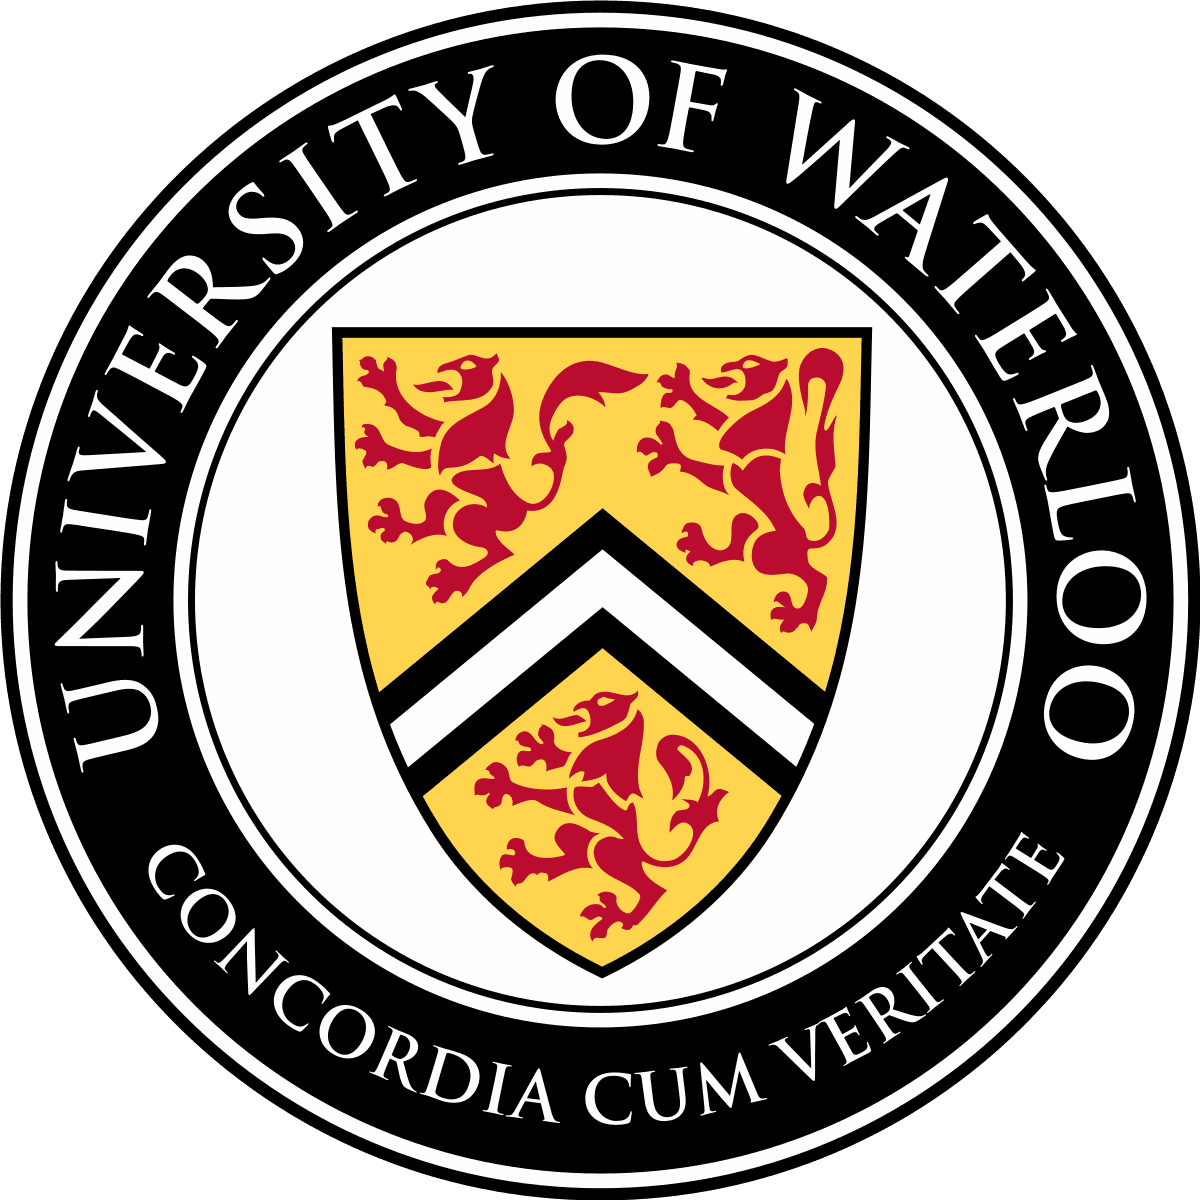 University of Waterloo Euclid Math Contest